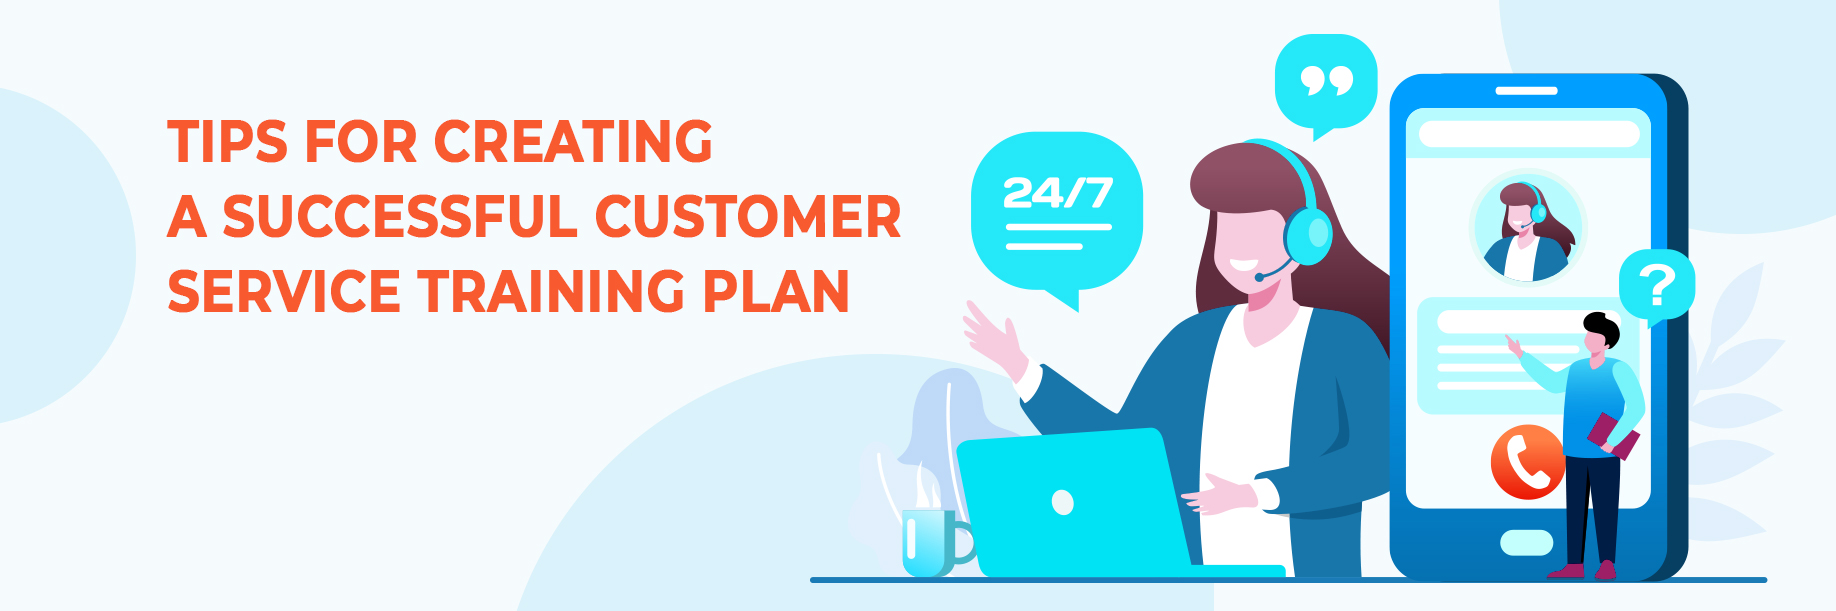 Tips for Creating a Successful Customer Service Training Plan